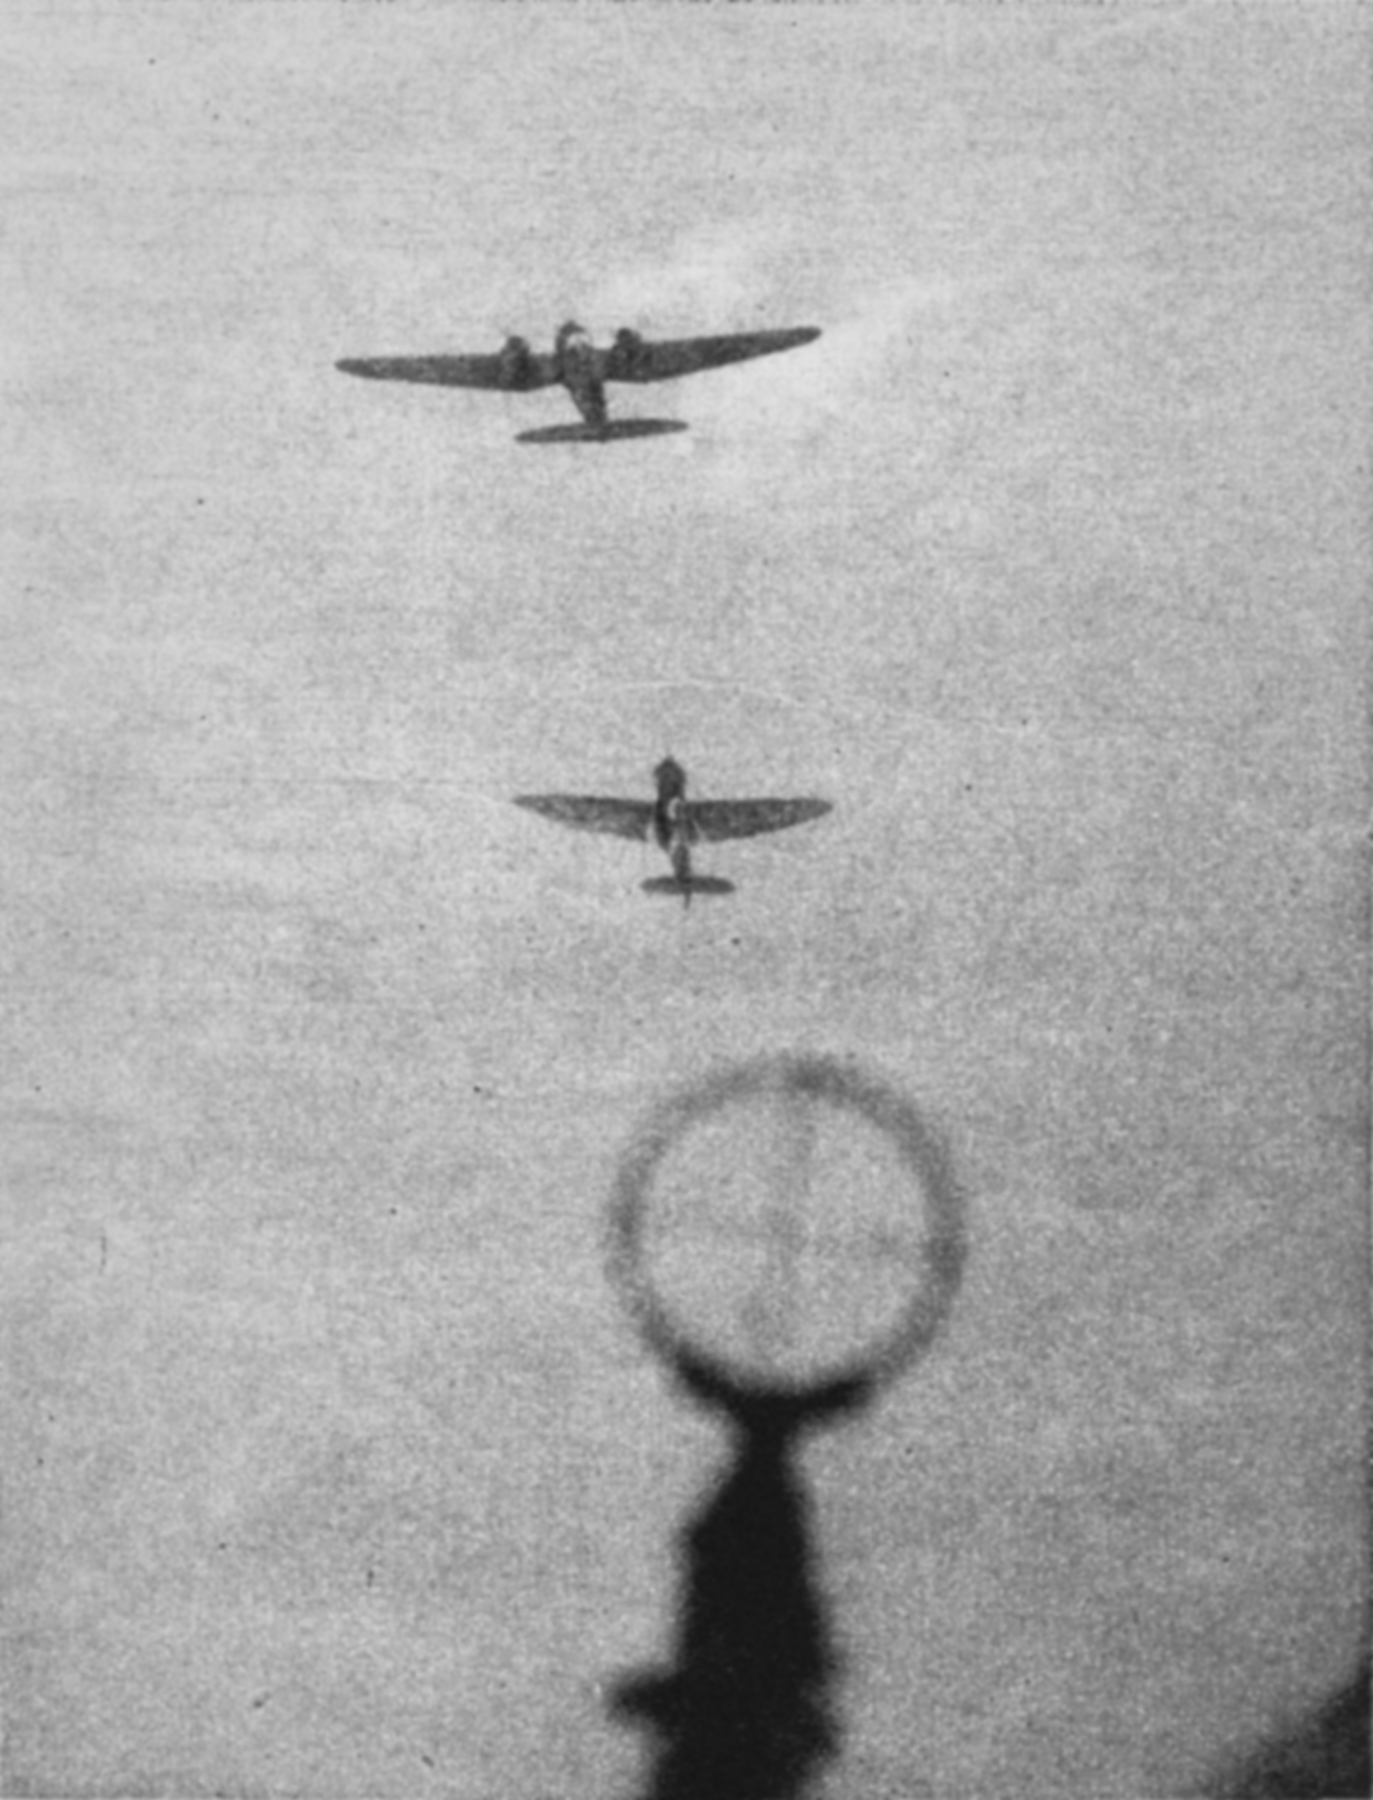 Camera battle footage between Luftwaffe He 111H bombers and a RAF Spitfire off the coast Spring 1941 02